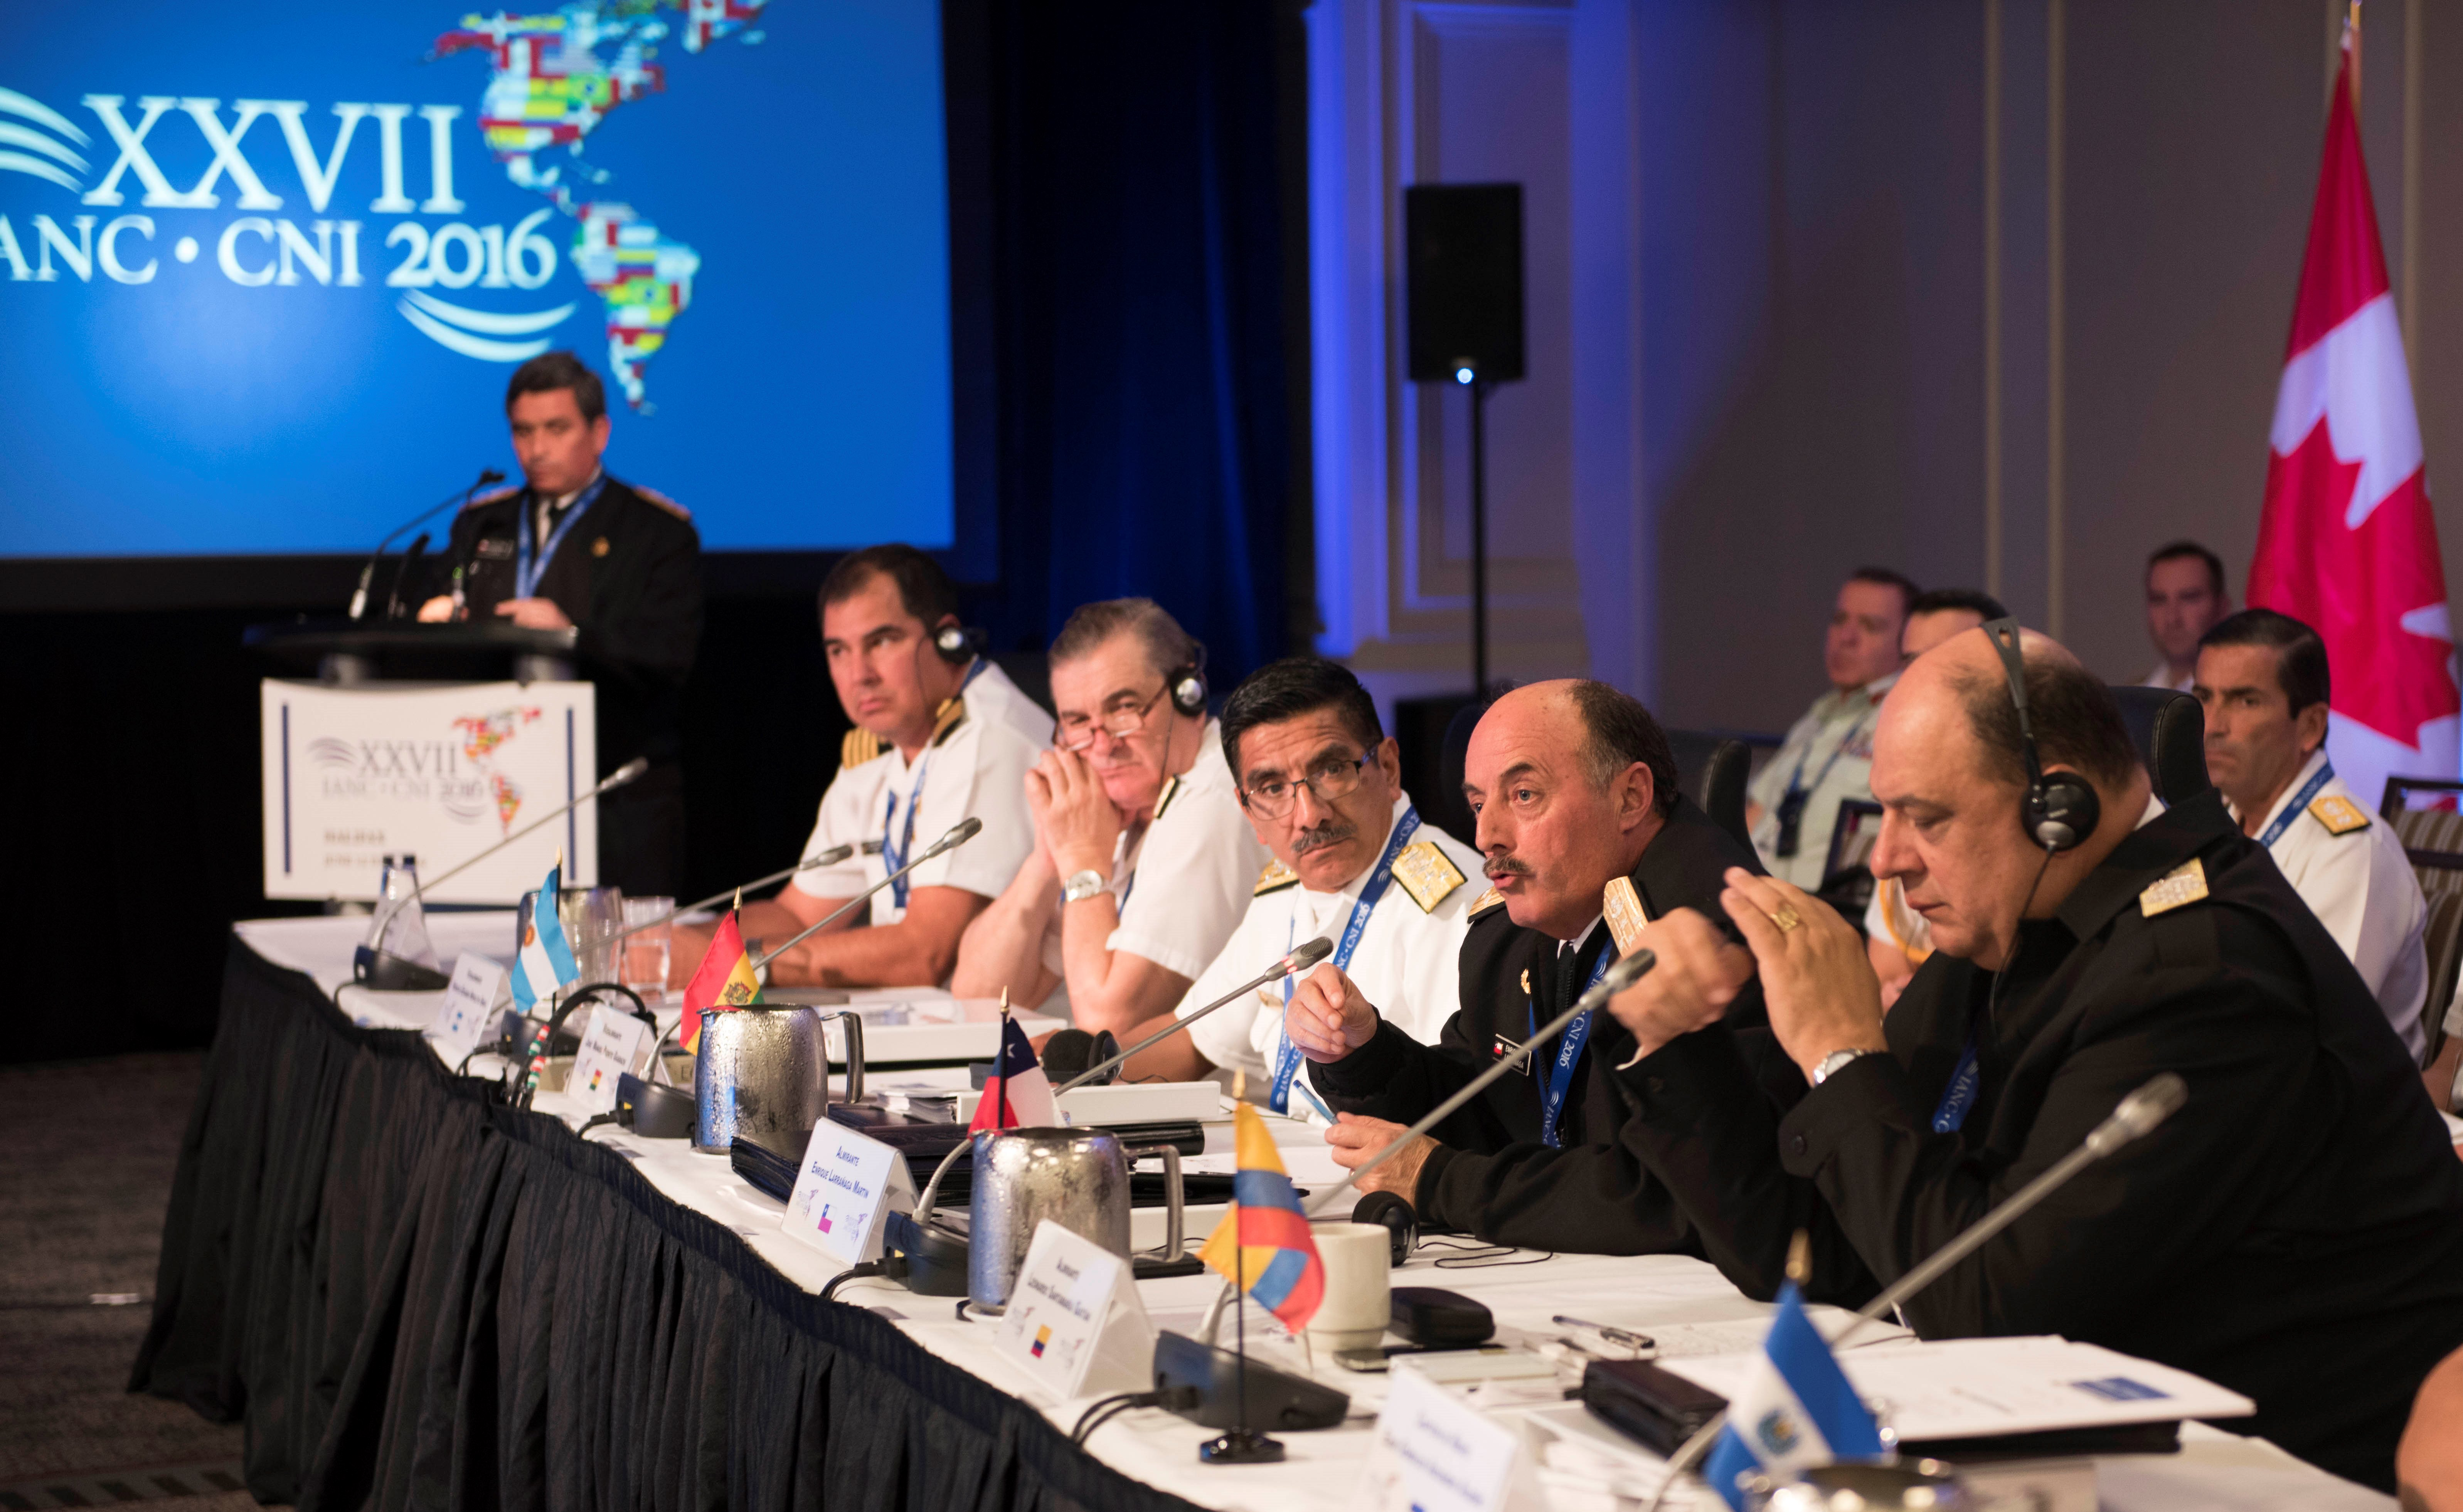 Almirante Martin Enrique Larranaga, Commander in Chief of the Chilean Navy, speaks to the other delegates during the Inter-American Naval Conference in Halifax on June 13, 2016.